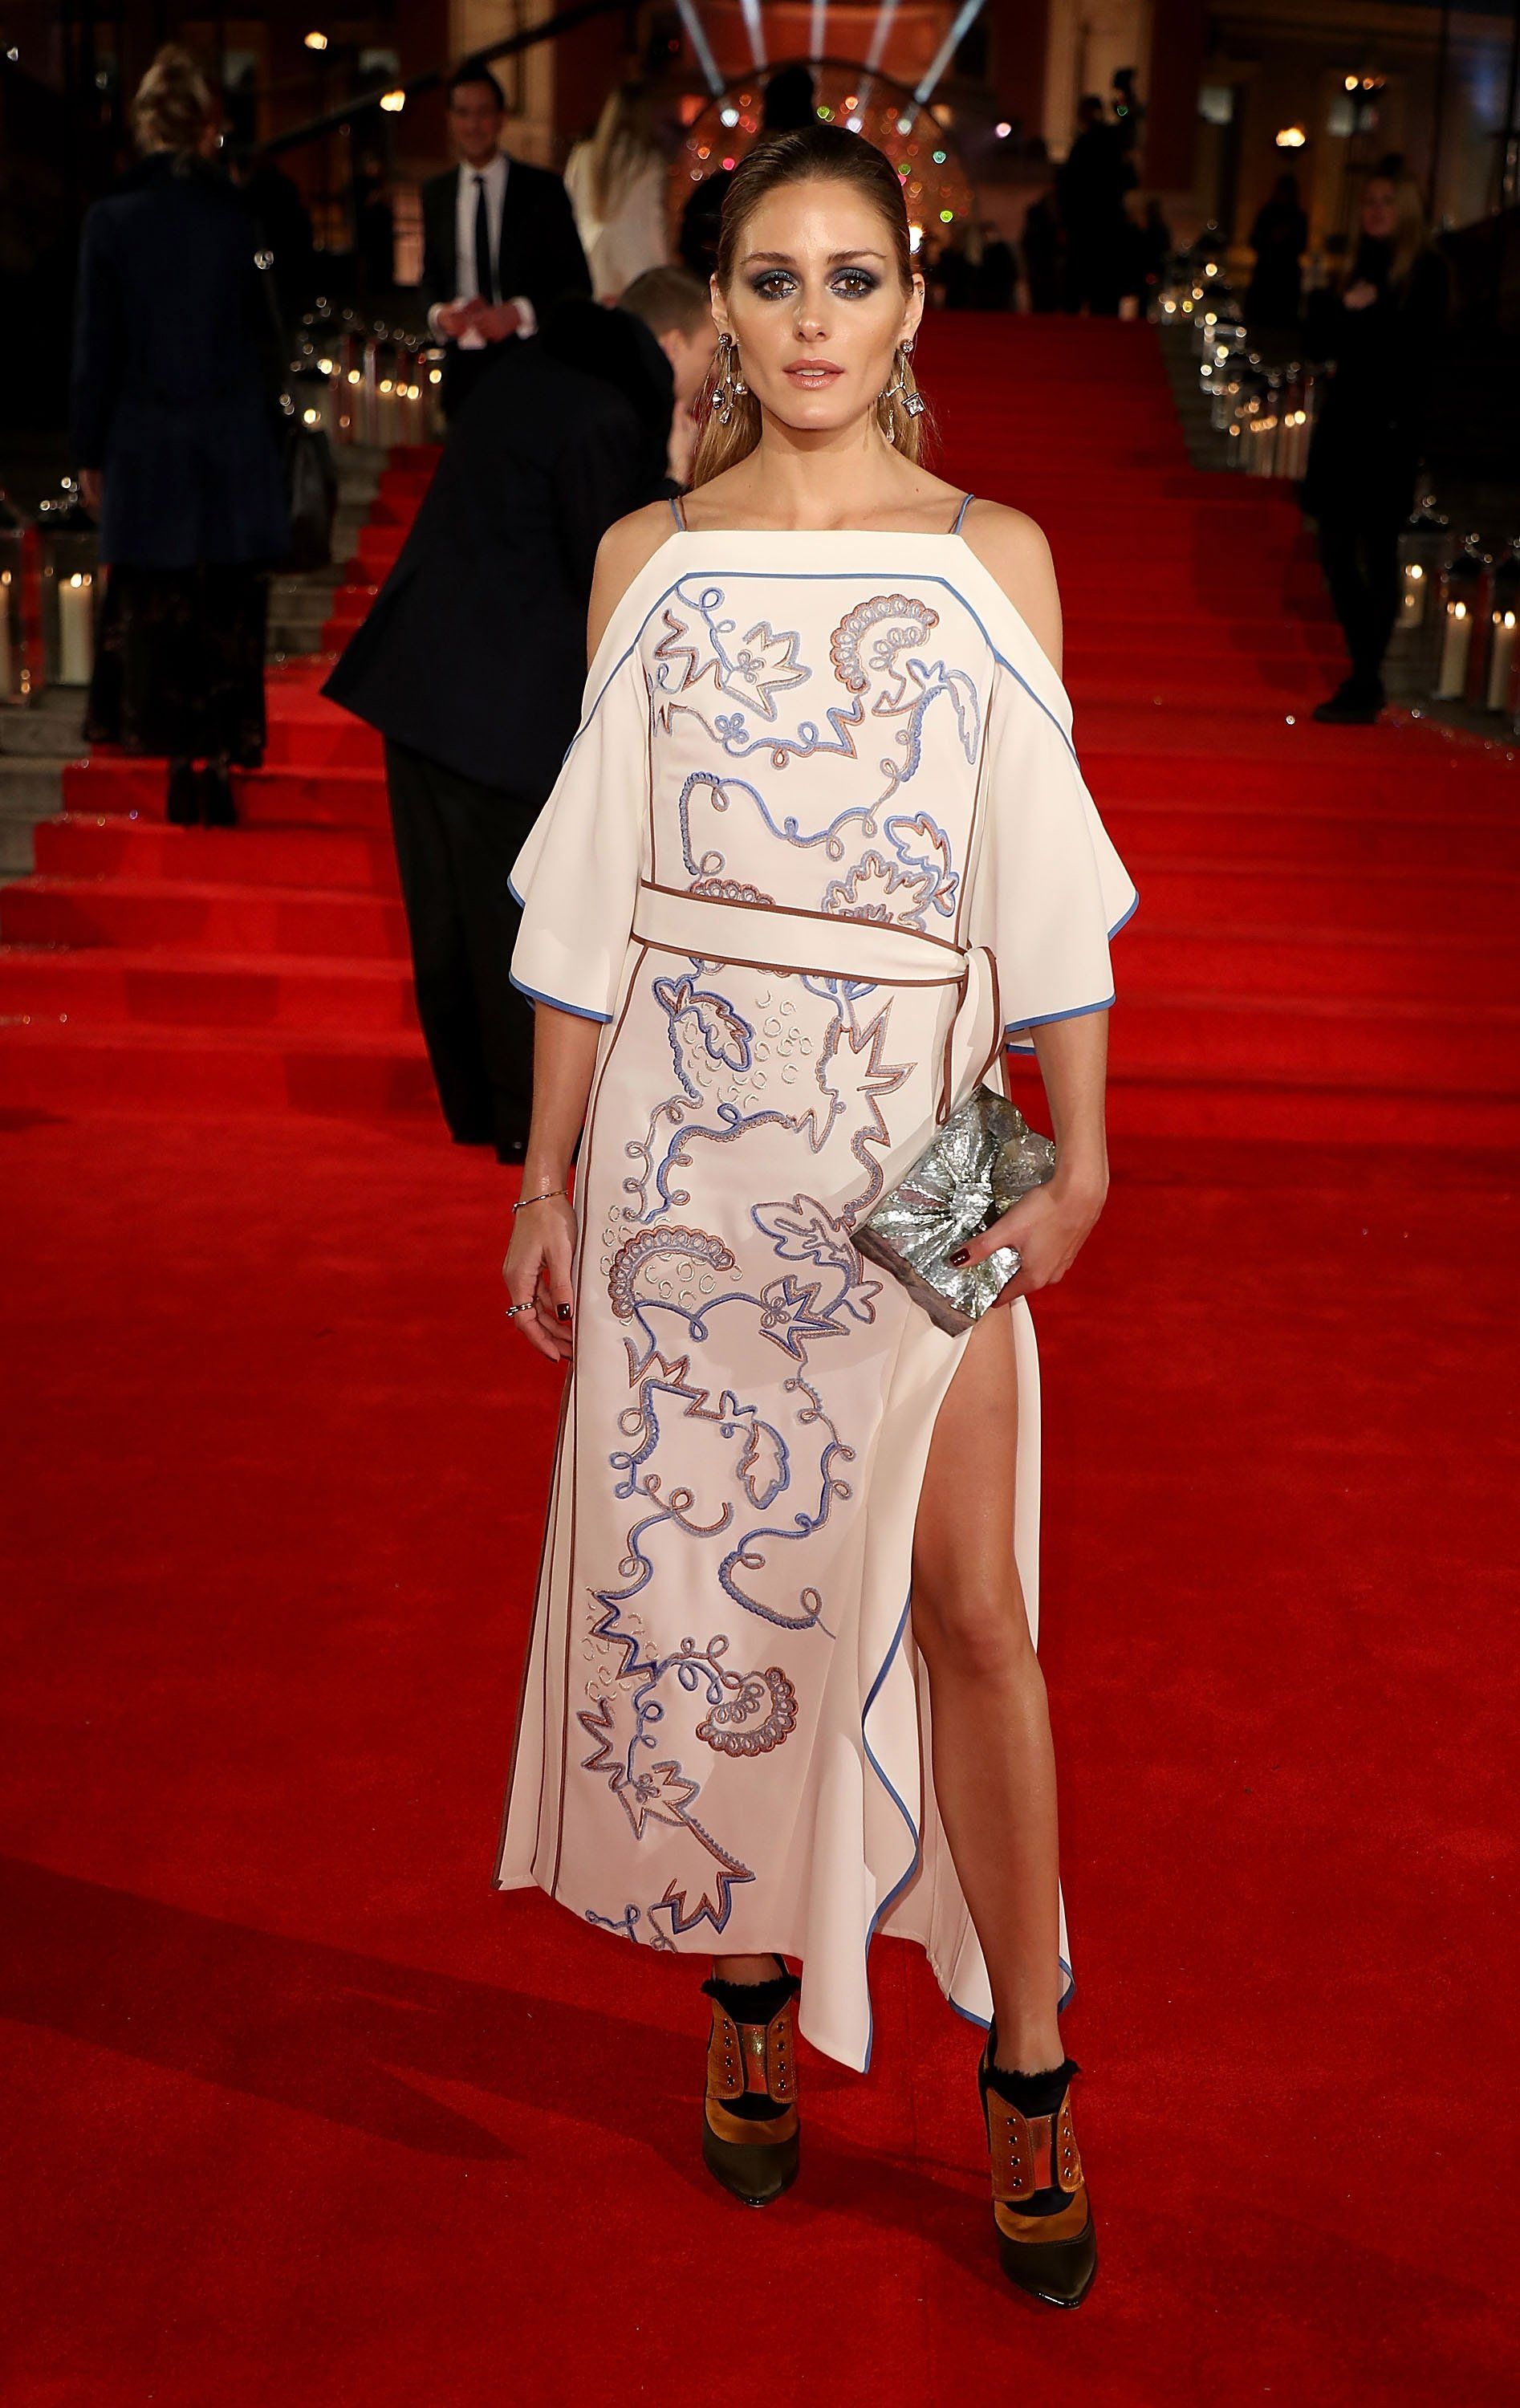 Olivia Palermo Pulls An Angelina Jolie Red Carpet Move At